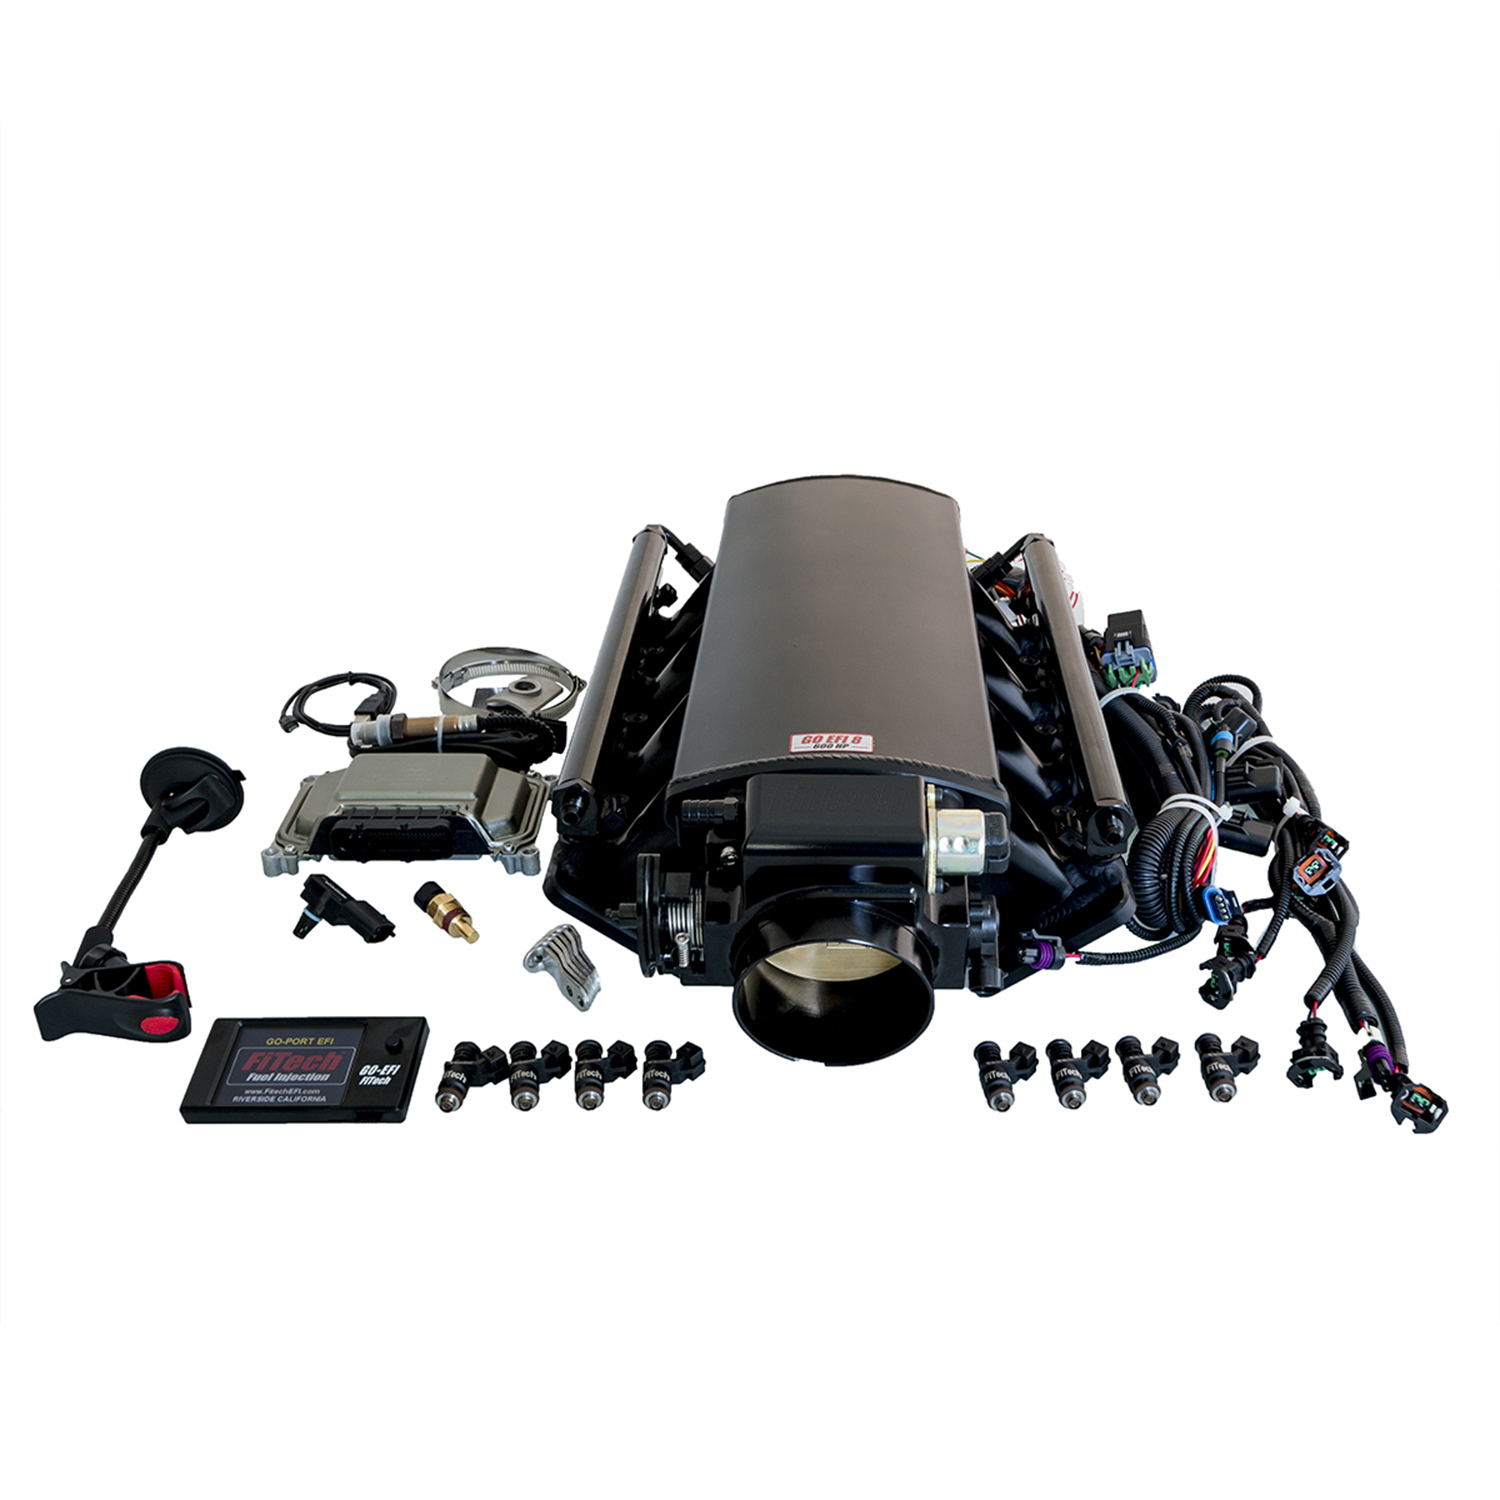 Fitech Ultimate Ls Induction System Ls1 2 6 Up To 750hp Without Street Rod Wiring Harness For Trans Control